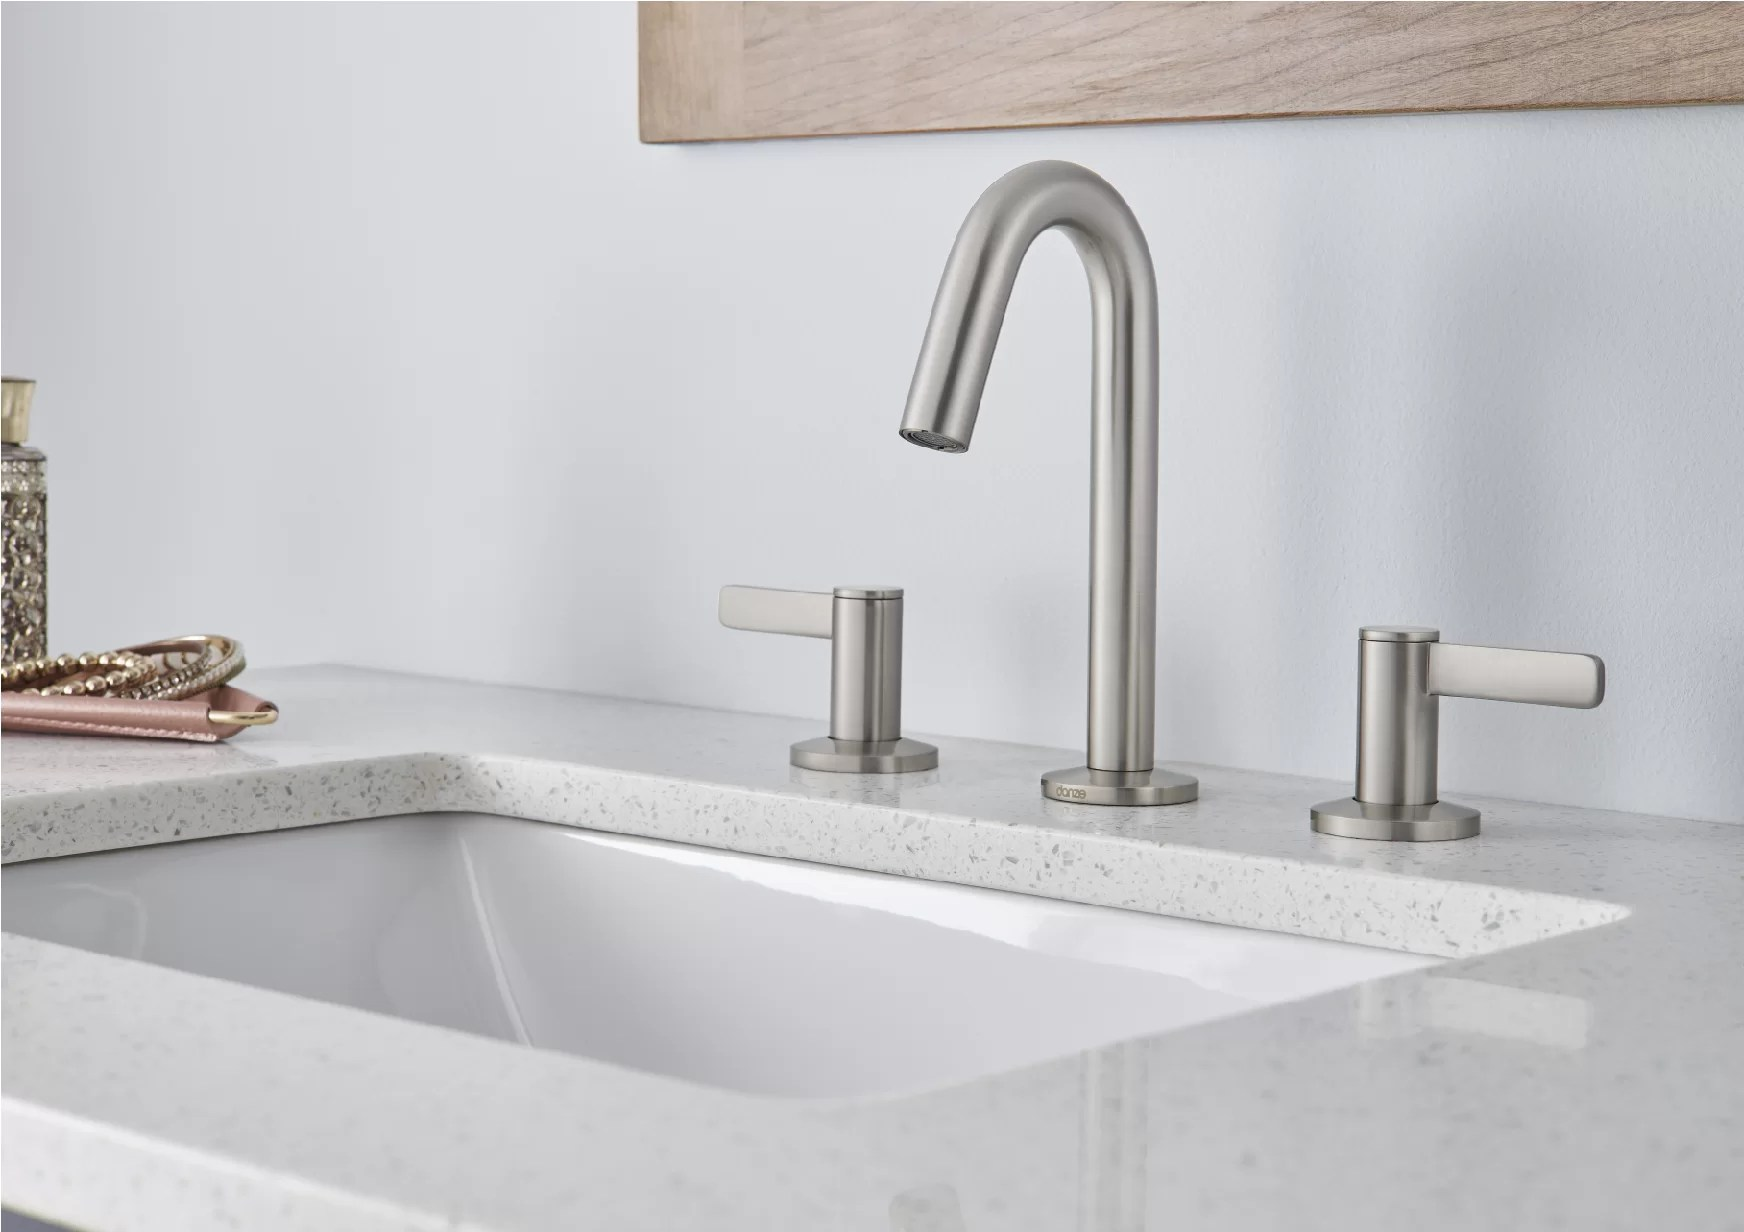 amalfi widespread bathroom faucet with drain assembly